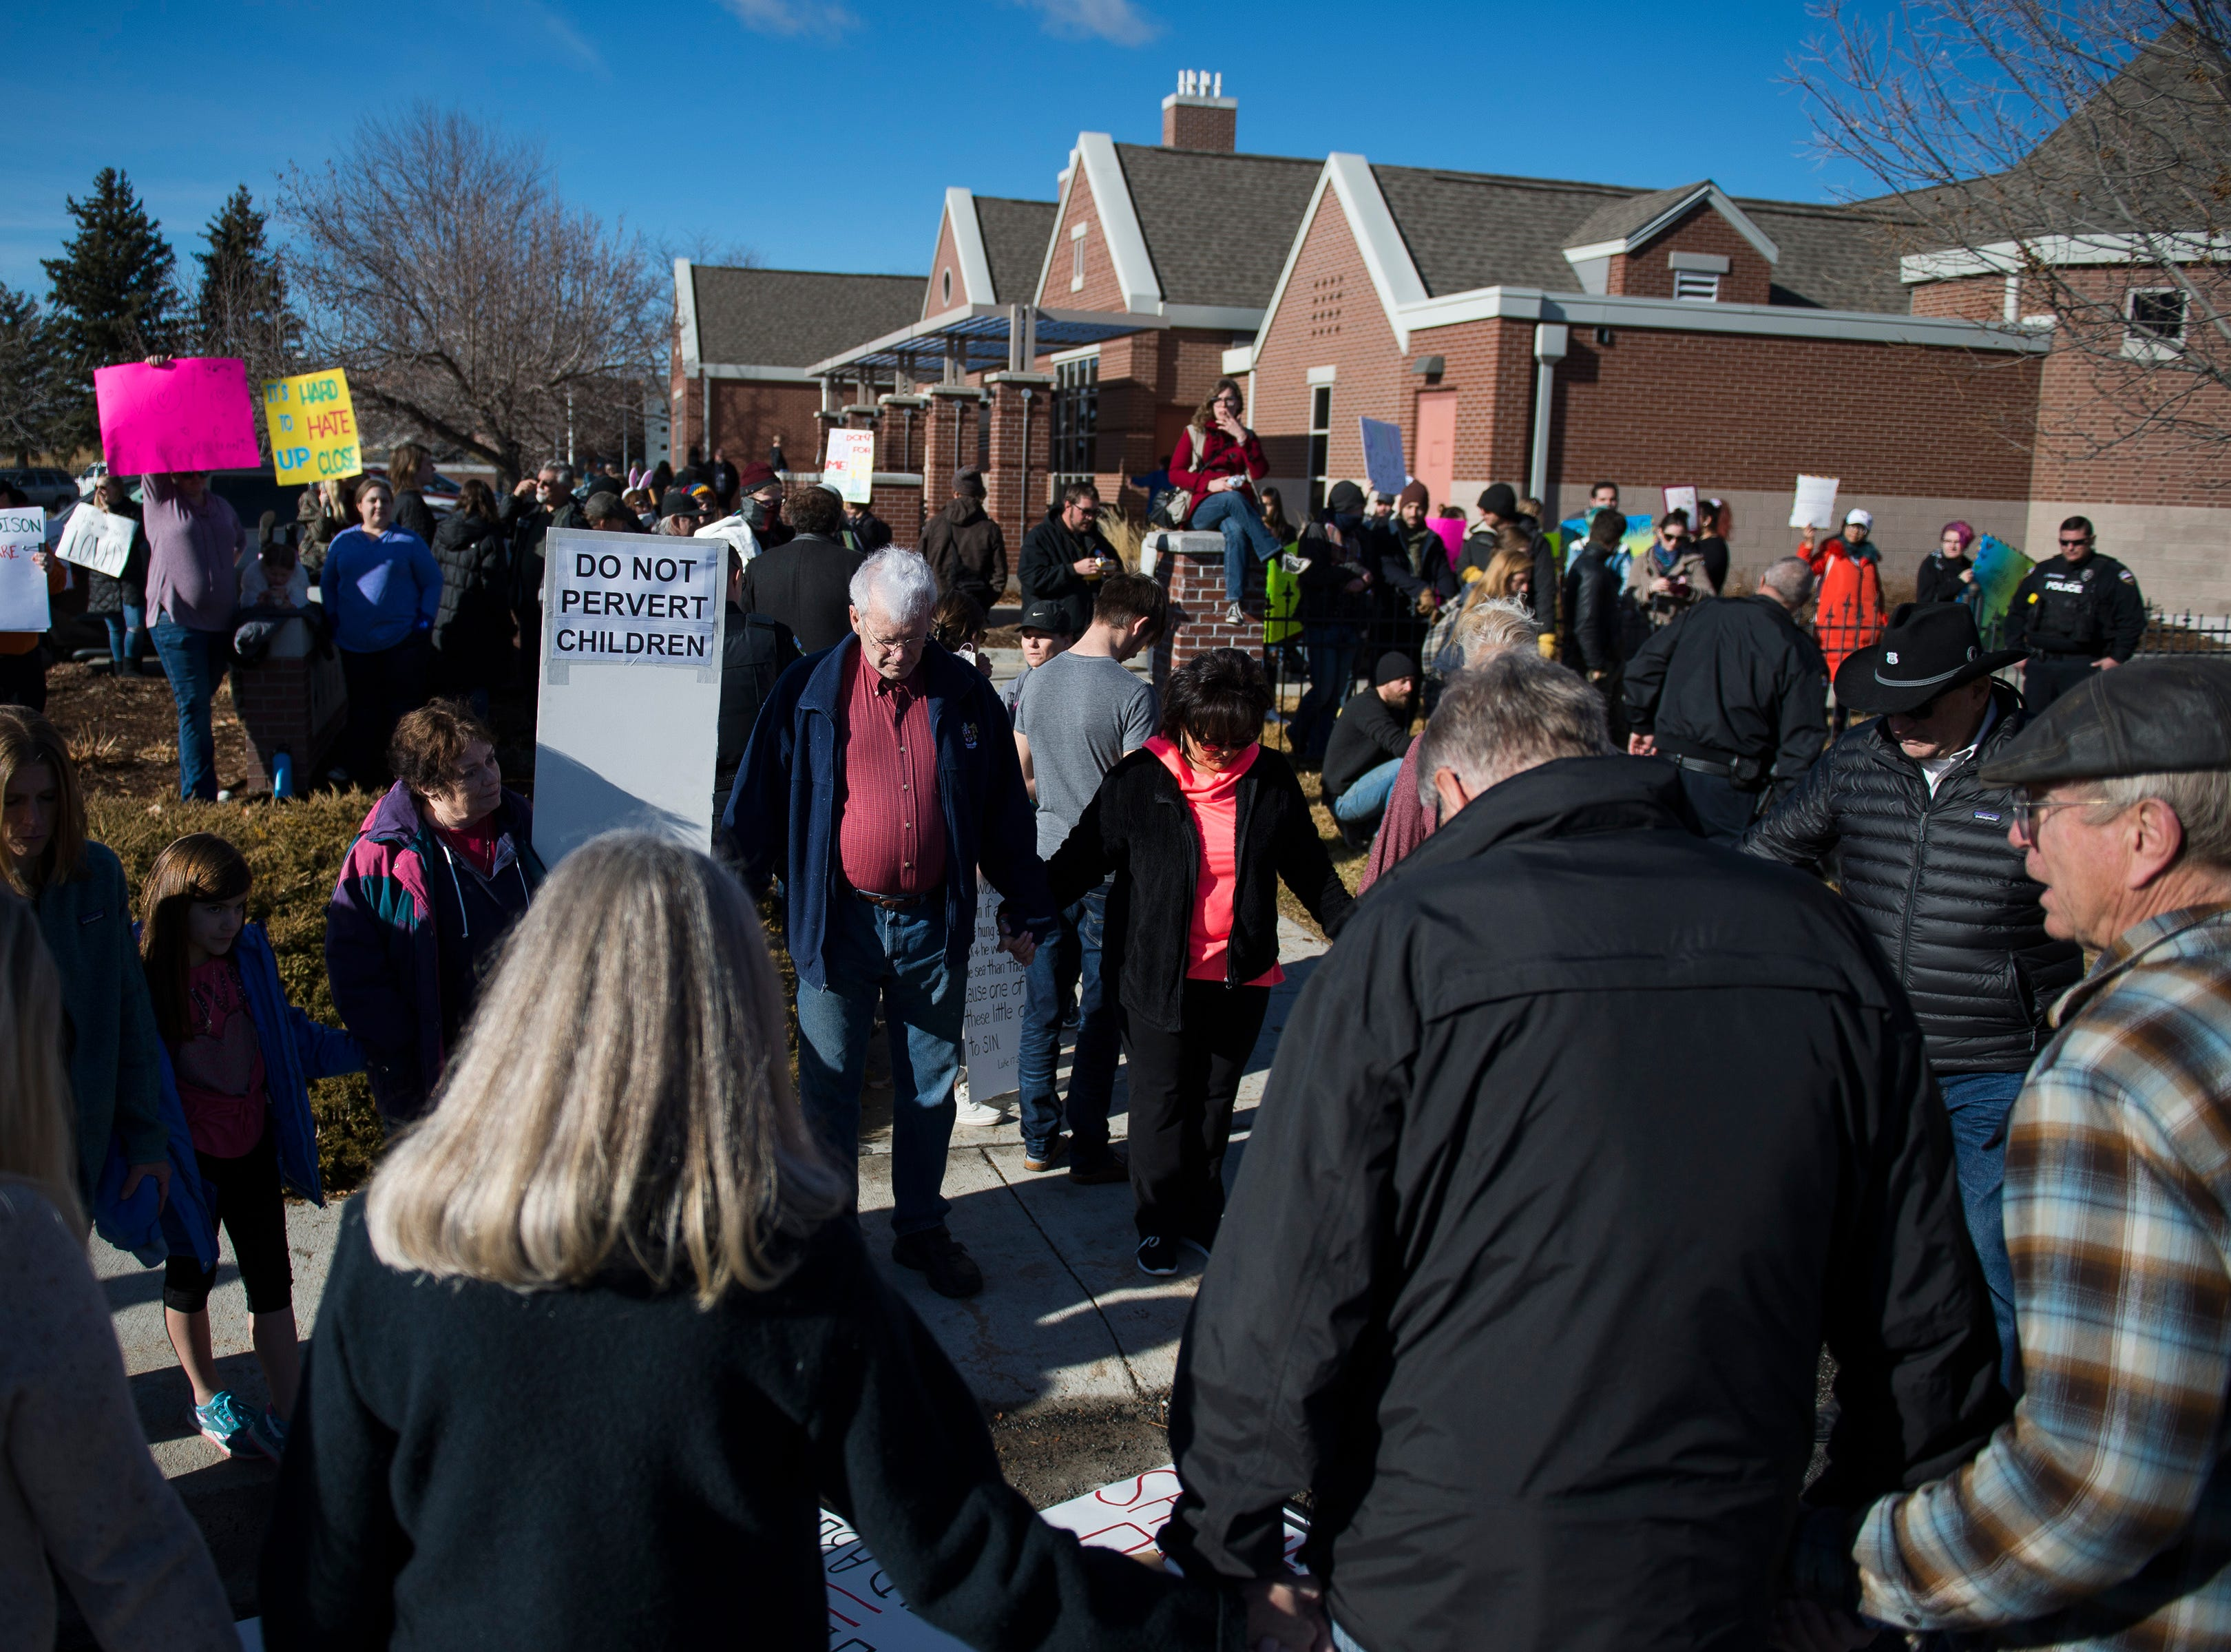 A group of protesters stand in a circle and pray outside the library before Drag Queen Story Hour on Saturday, Jan. 12, 2019, at the Clearview Public Library in Windsor, Colo. Drag Queen Story Hour is a program put on by SPLASH, an LGBTQ+ youth outreach organization.